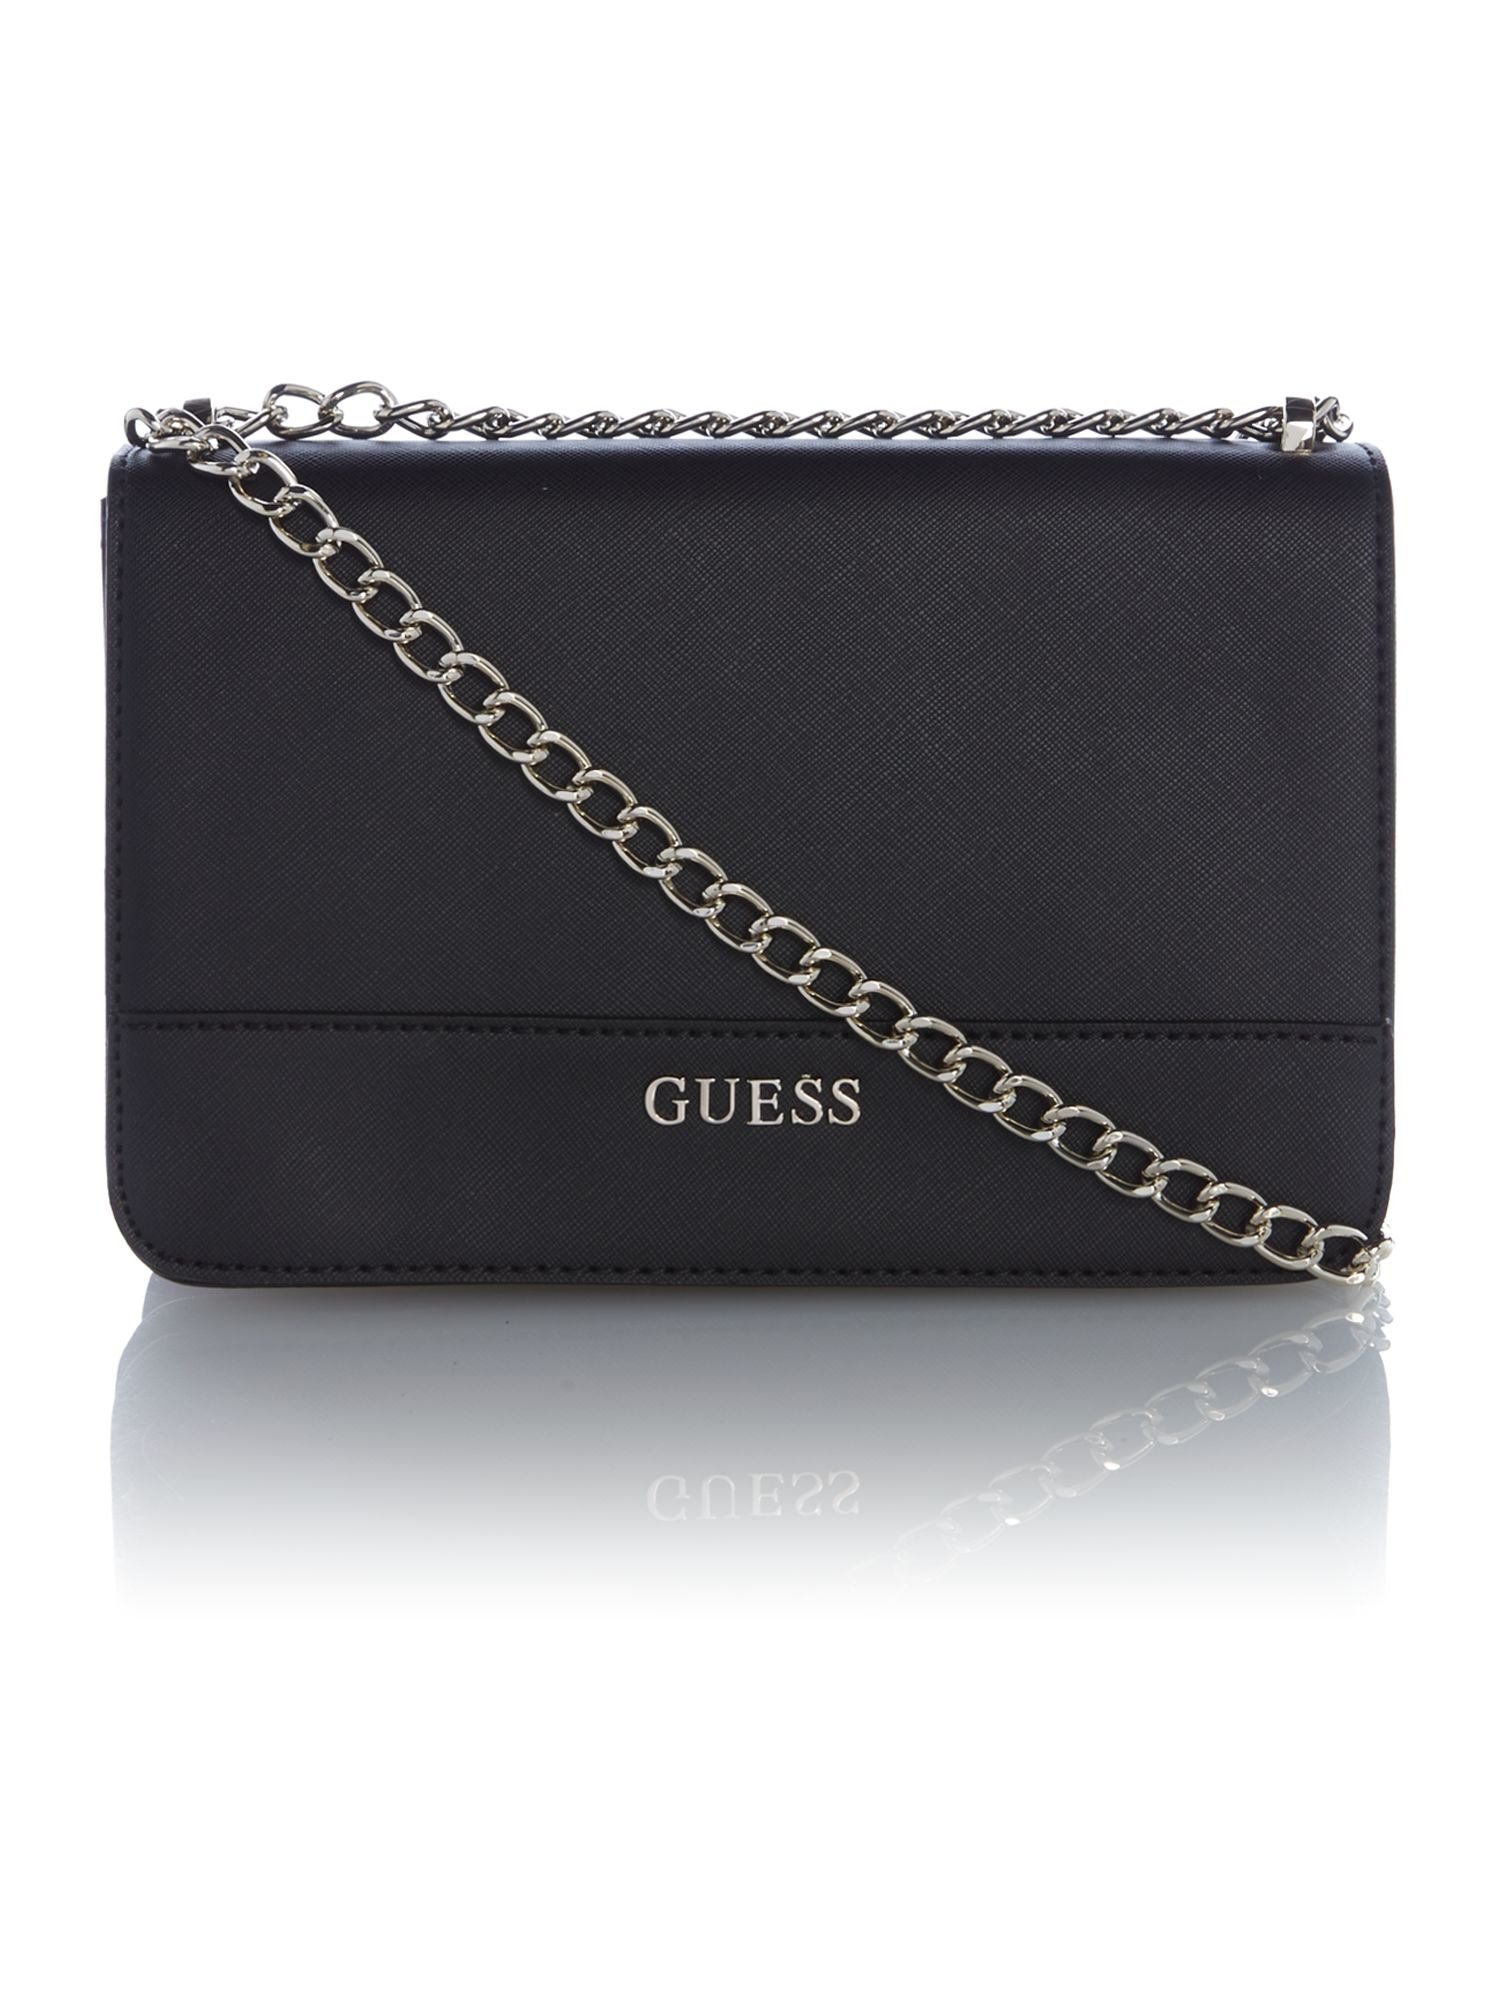 Guess Handbag Kihei Small Crossbody Flap Bag Burke Leather Totes 2b50ccabee8a3